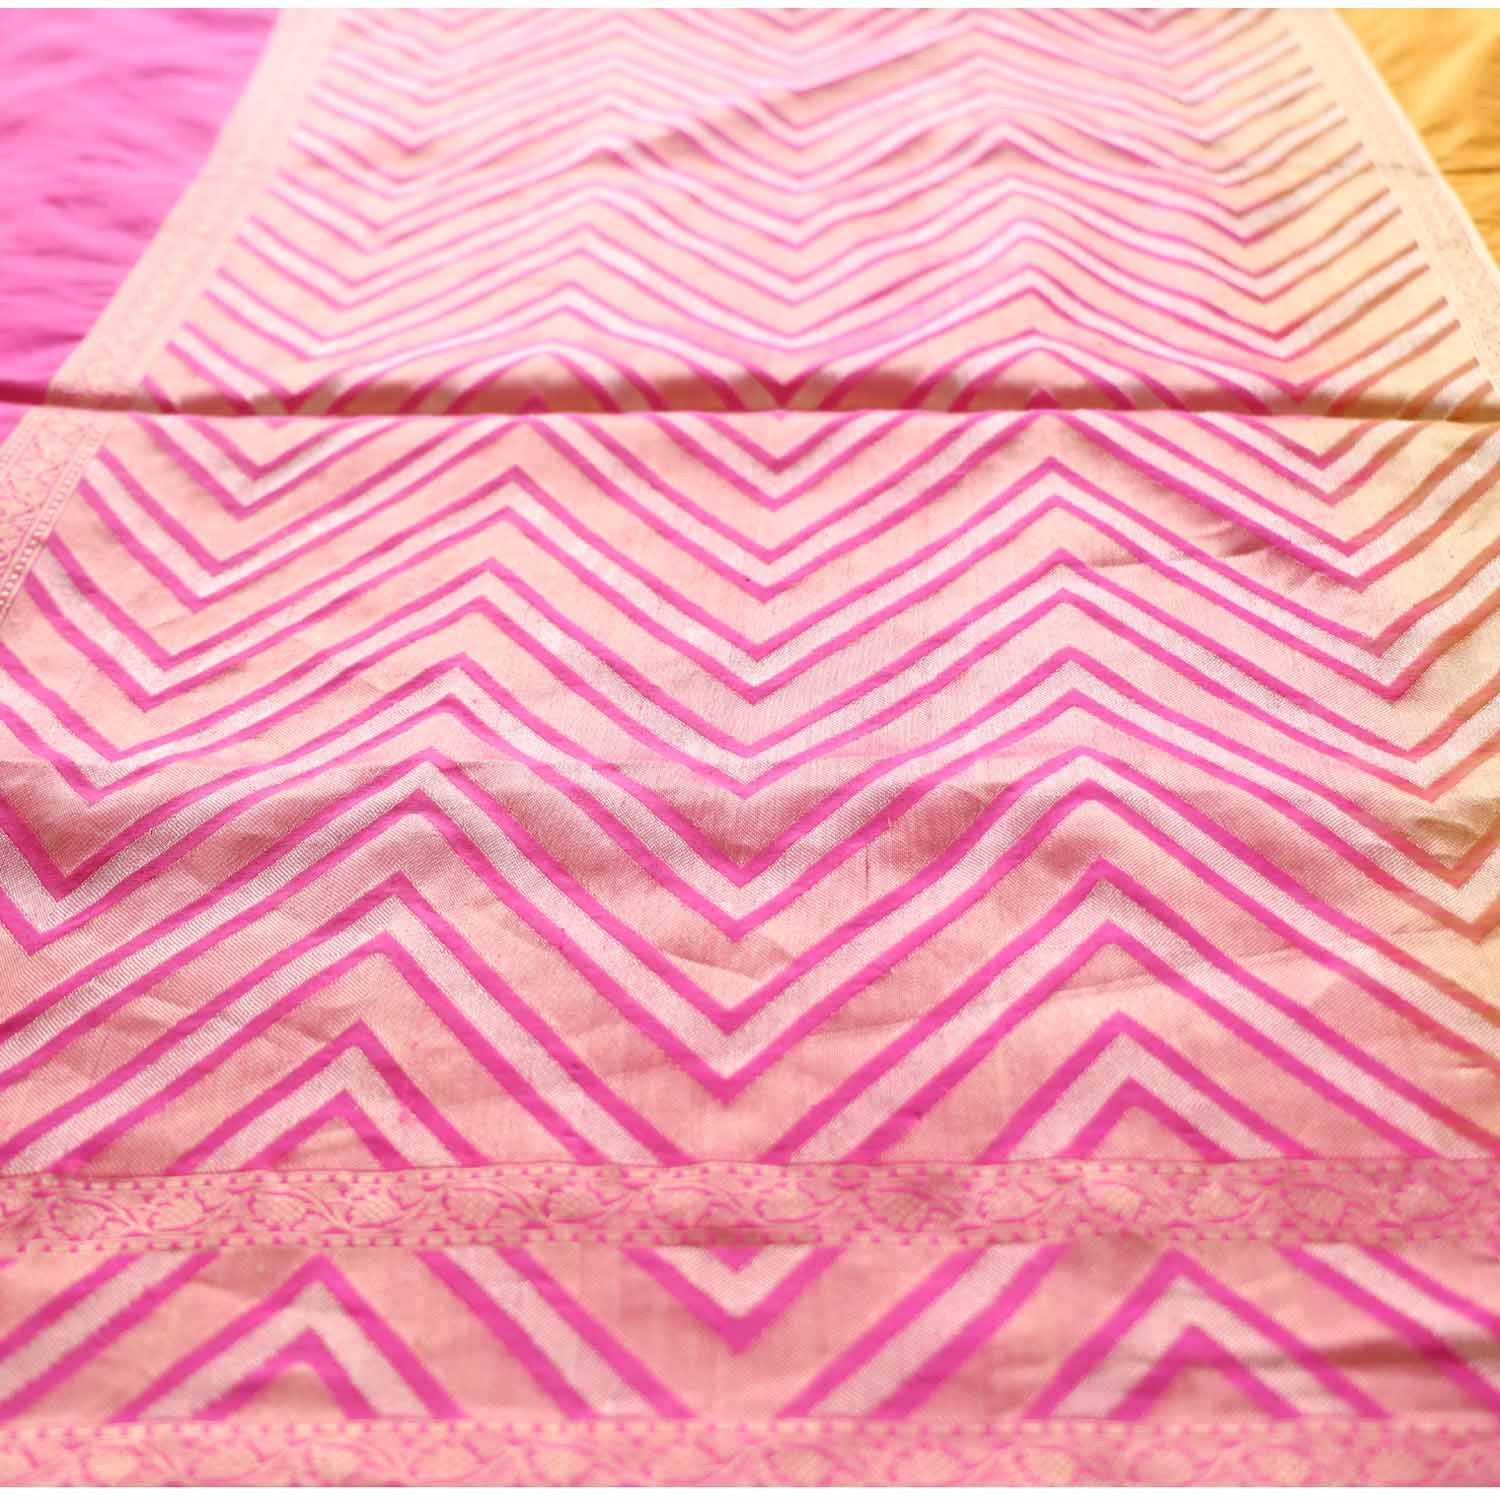 Yellow-Indian Pink Pure Katan Silk Banarasi Handloom Saree - Tilfi - 2